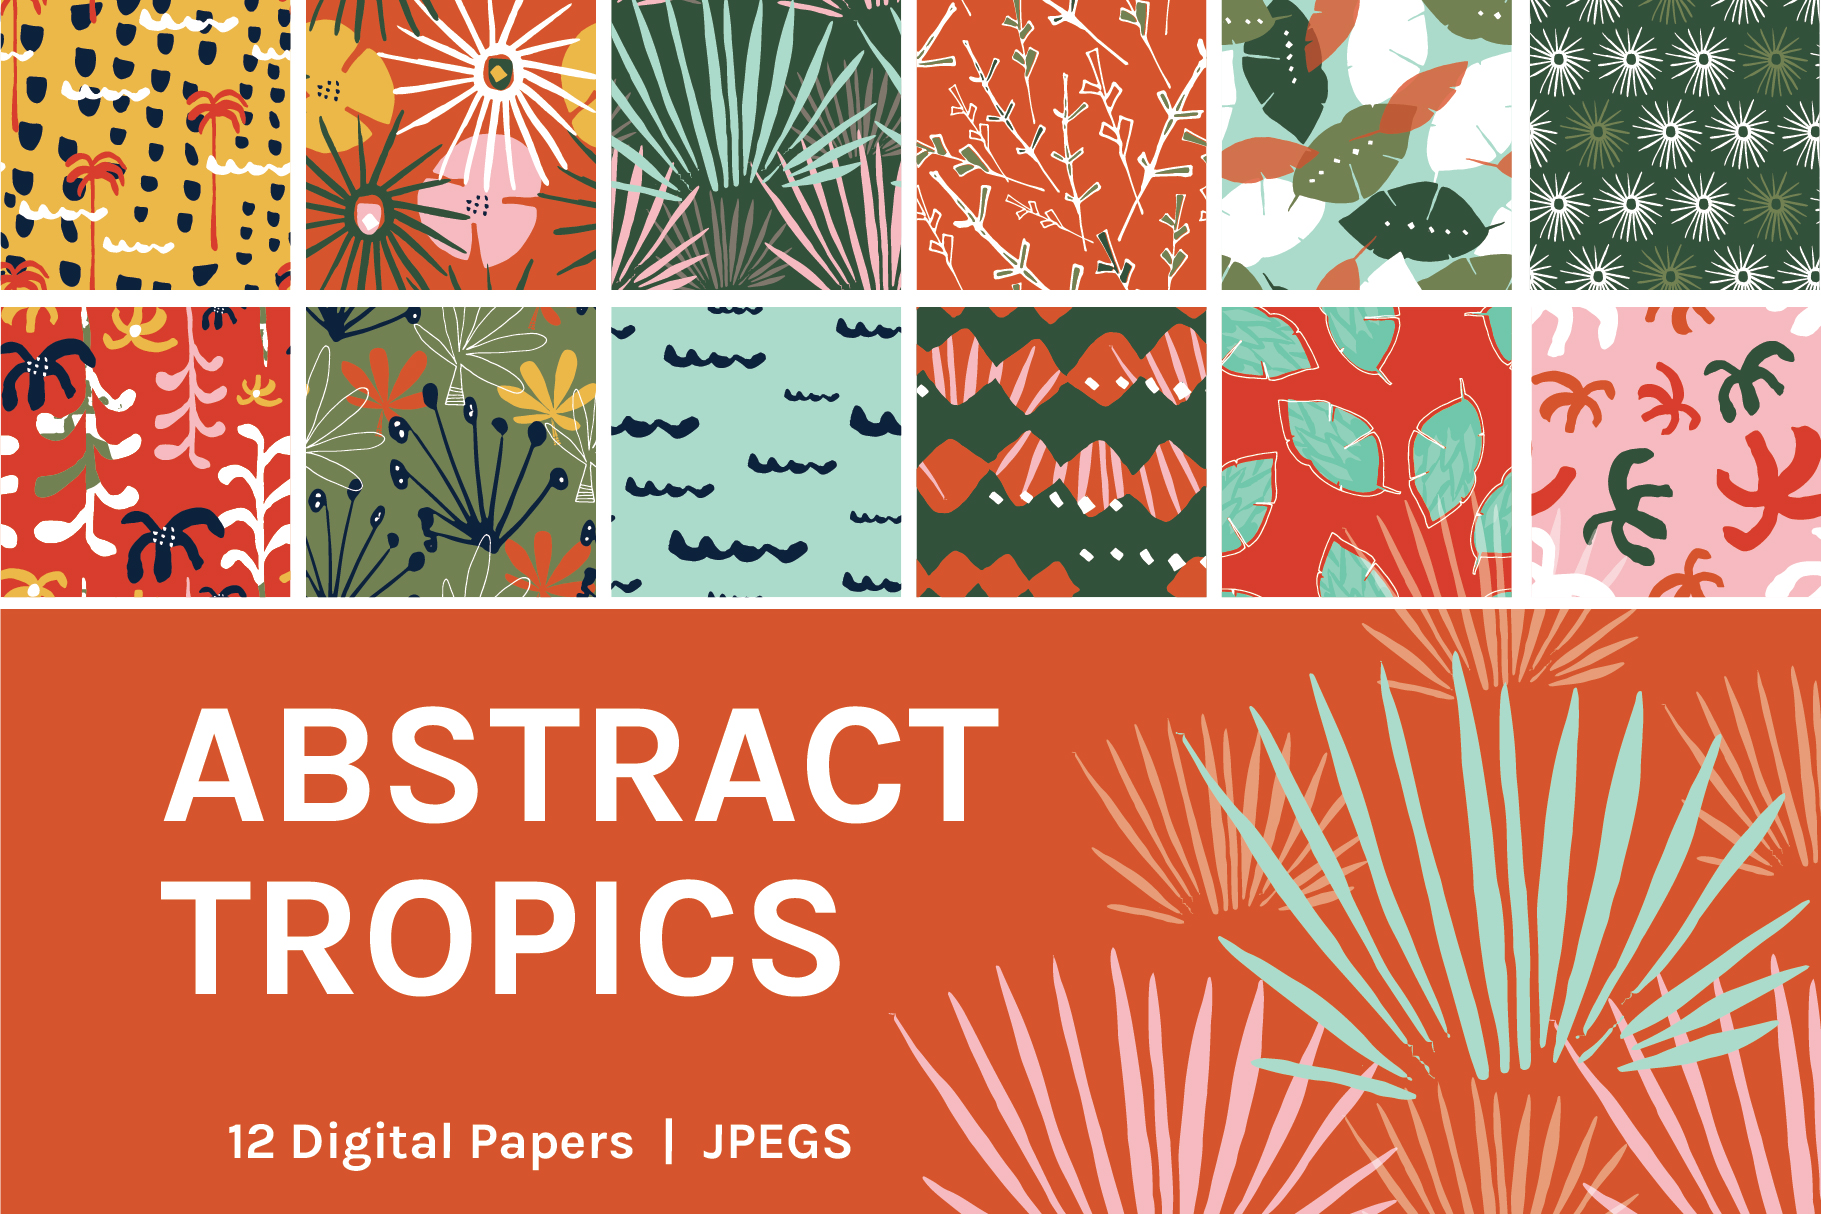 Abstract Tropics example image 1